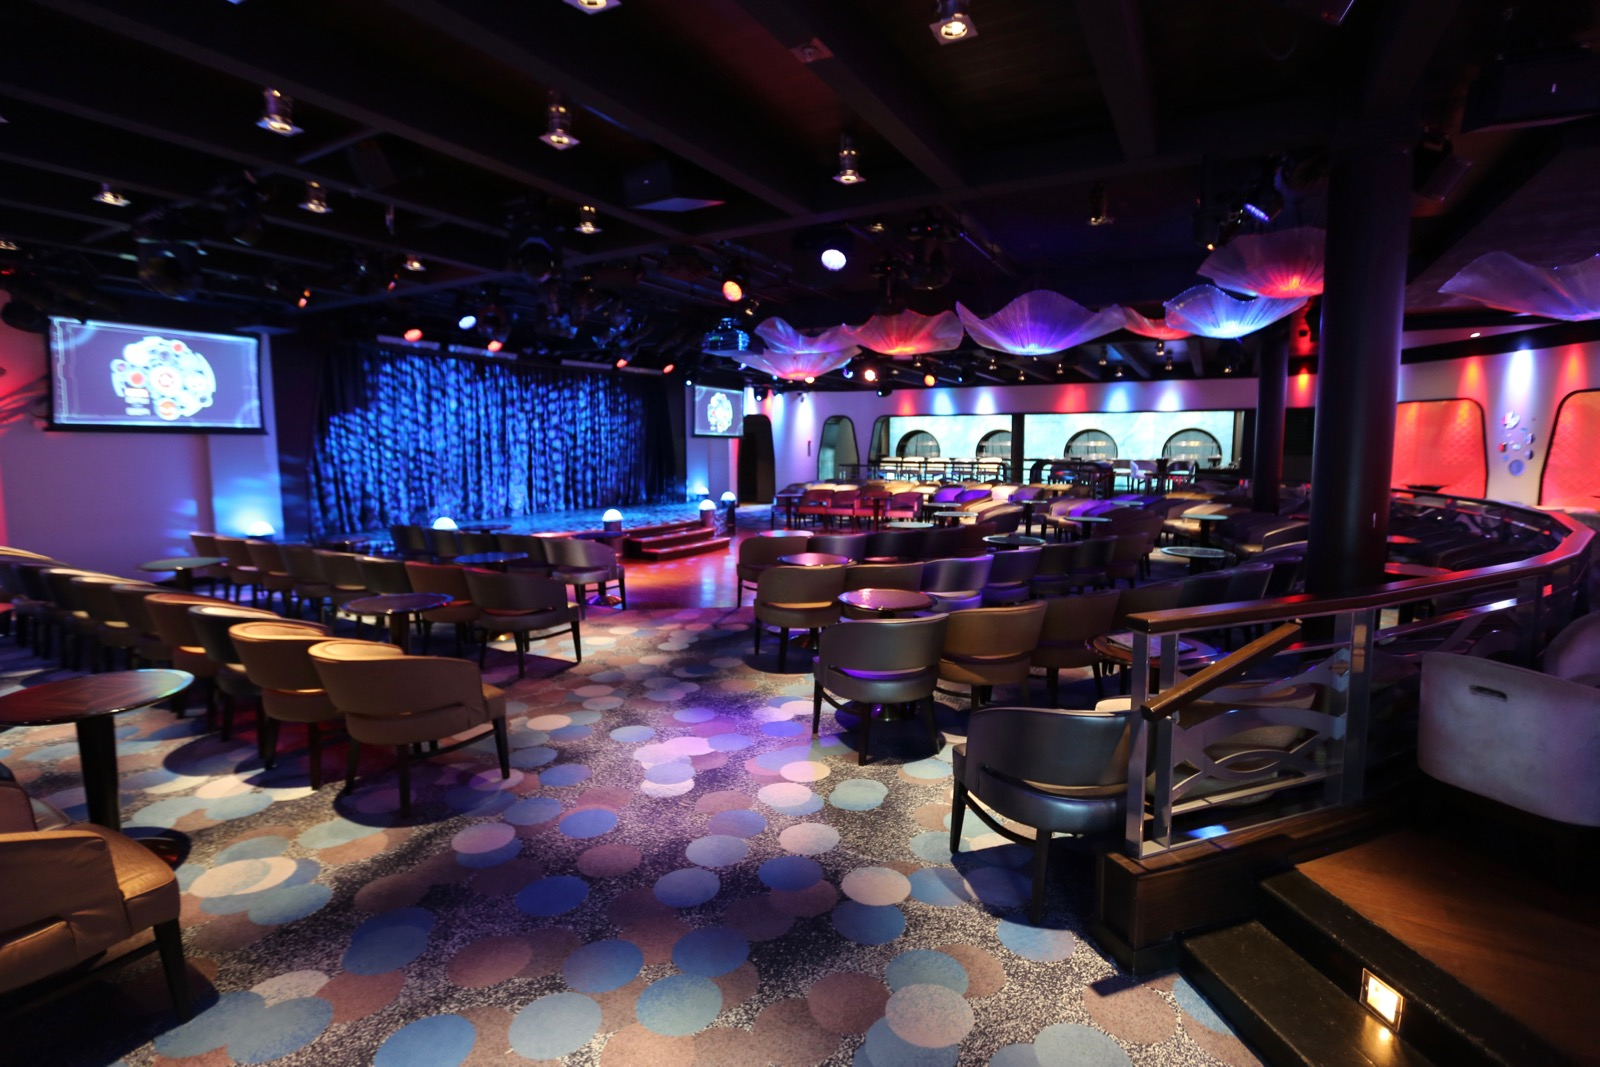 disney cruise line night club